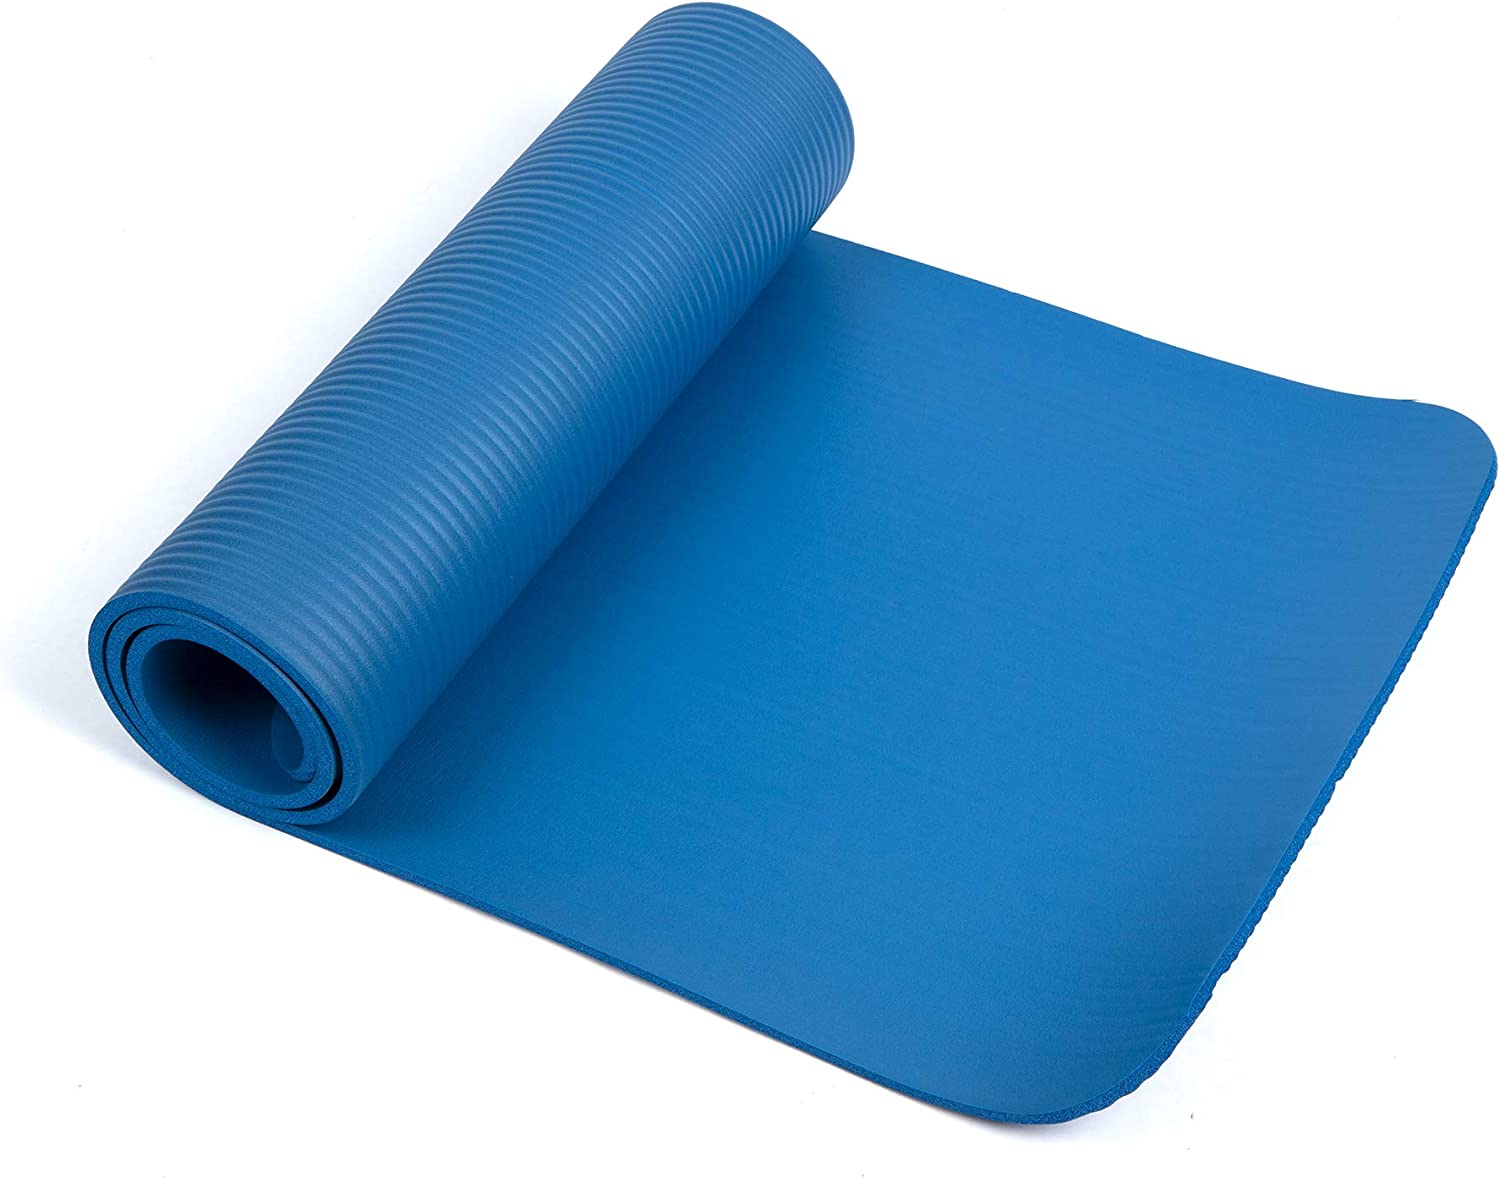 High Density Anti-Tear Blue Mind Reader NBRMAT-BLU All Purpose 1//2 Extra Thick Yoga Fitness /& Exercise Mats with Carrying Strap